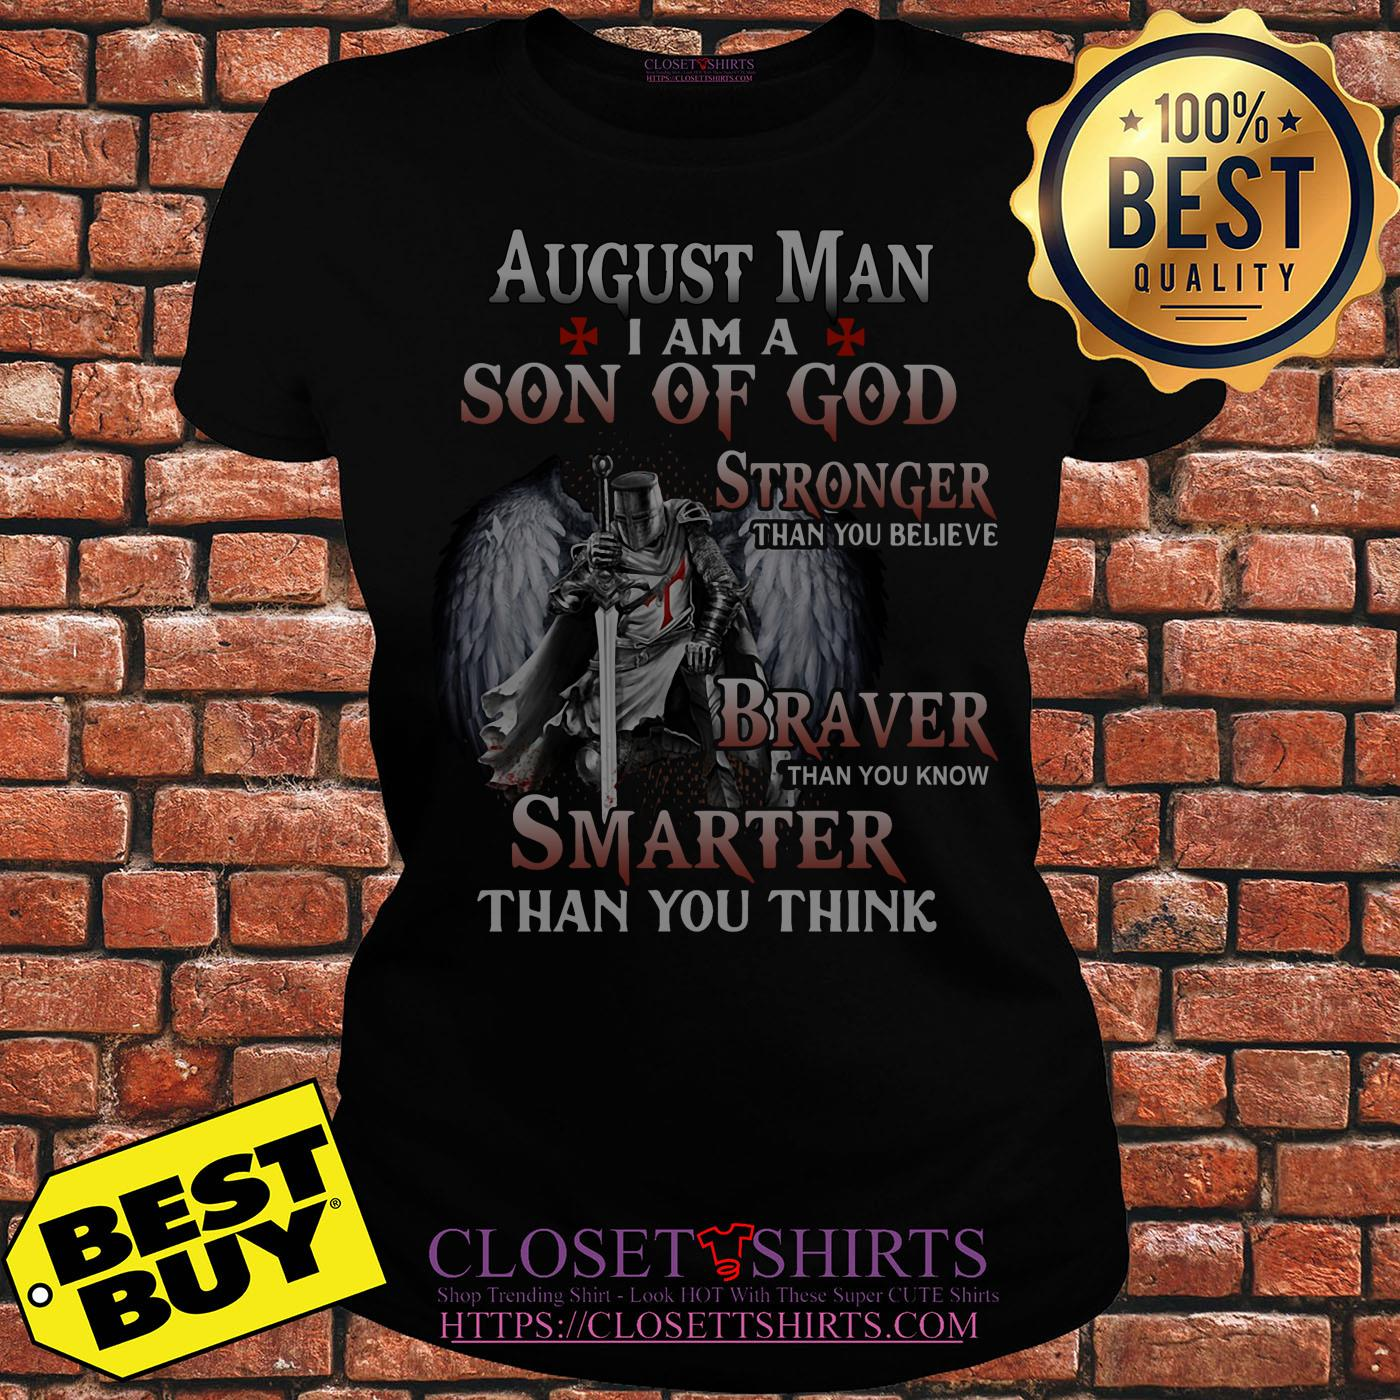 August Man I Am A Son Of God Stronger Than You Believe ladies tee